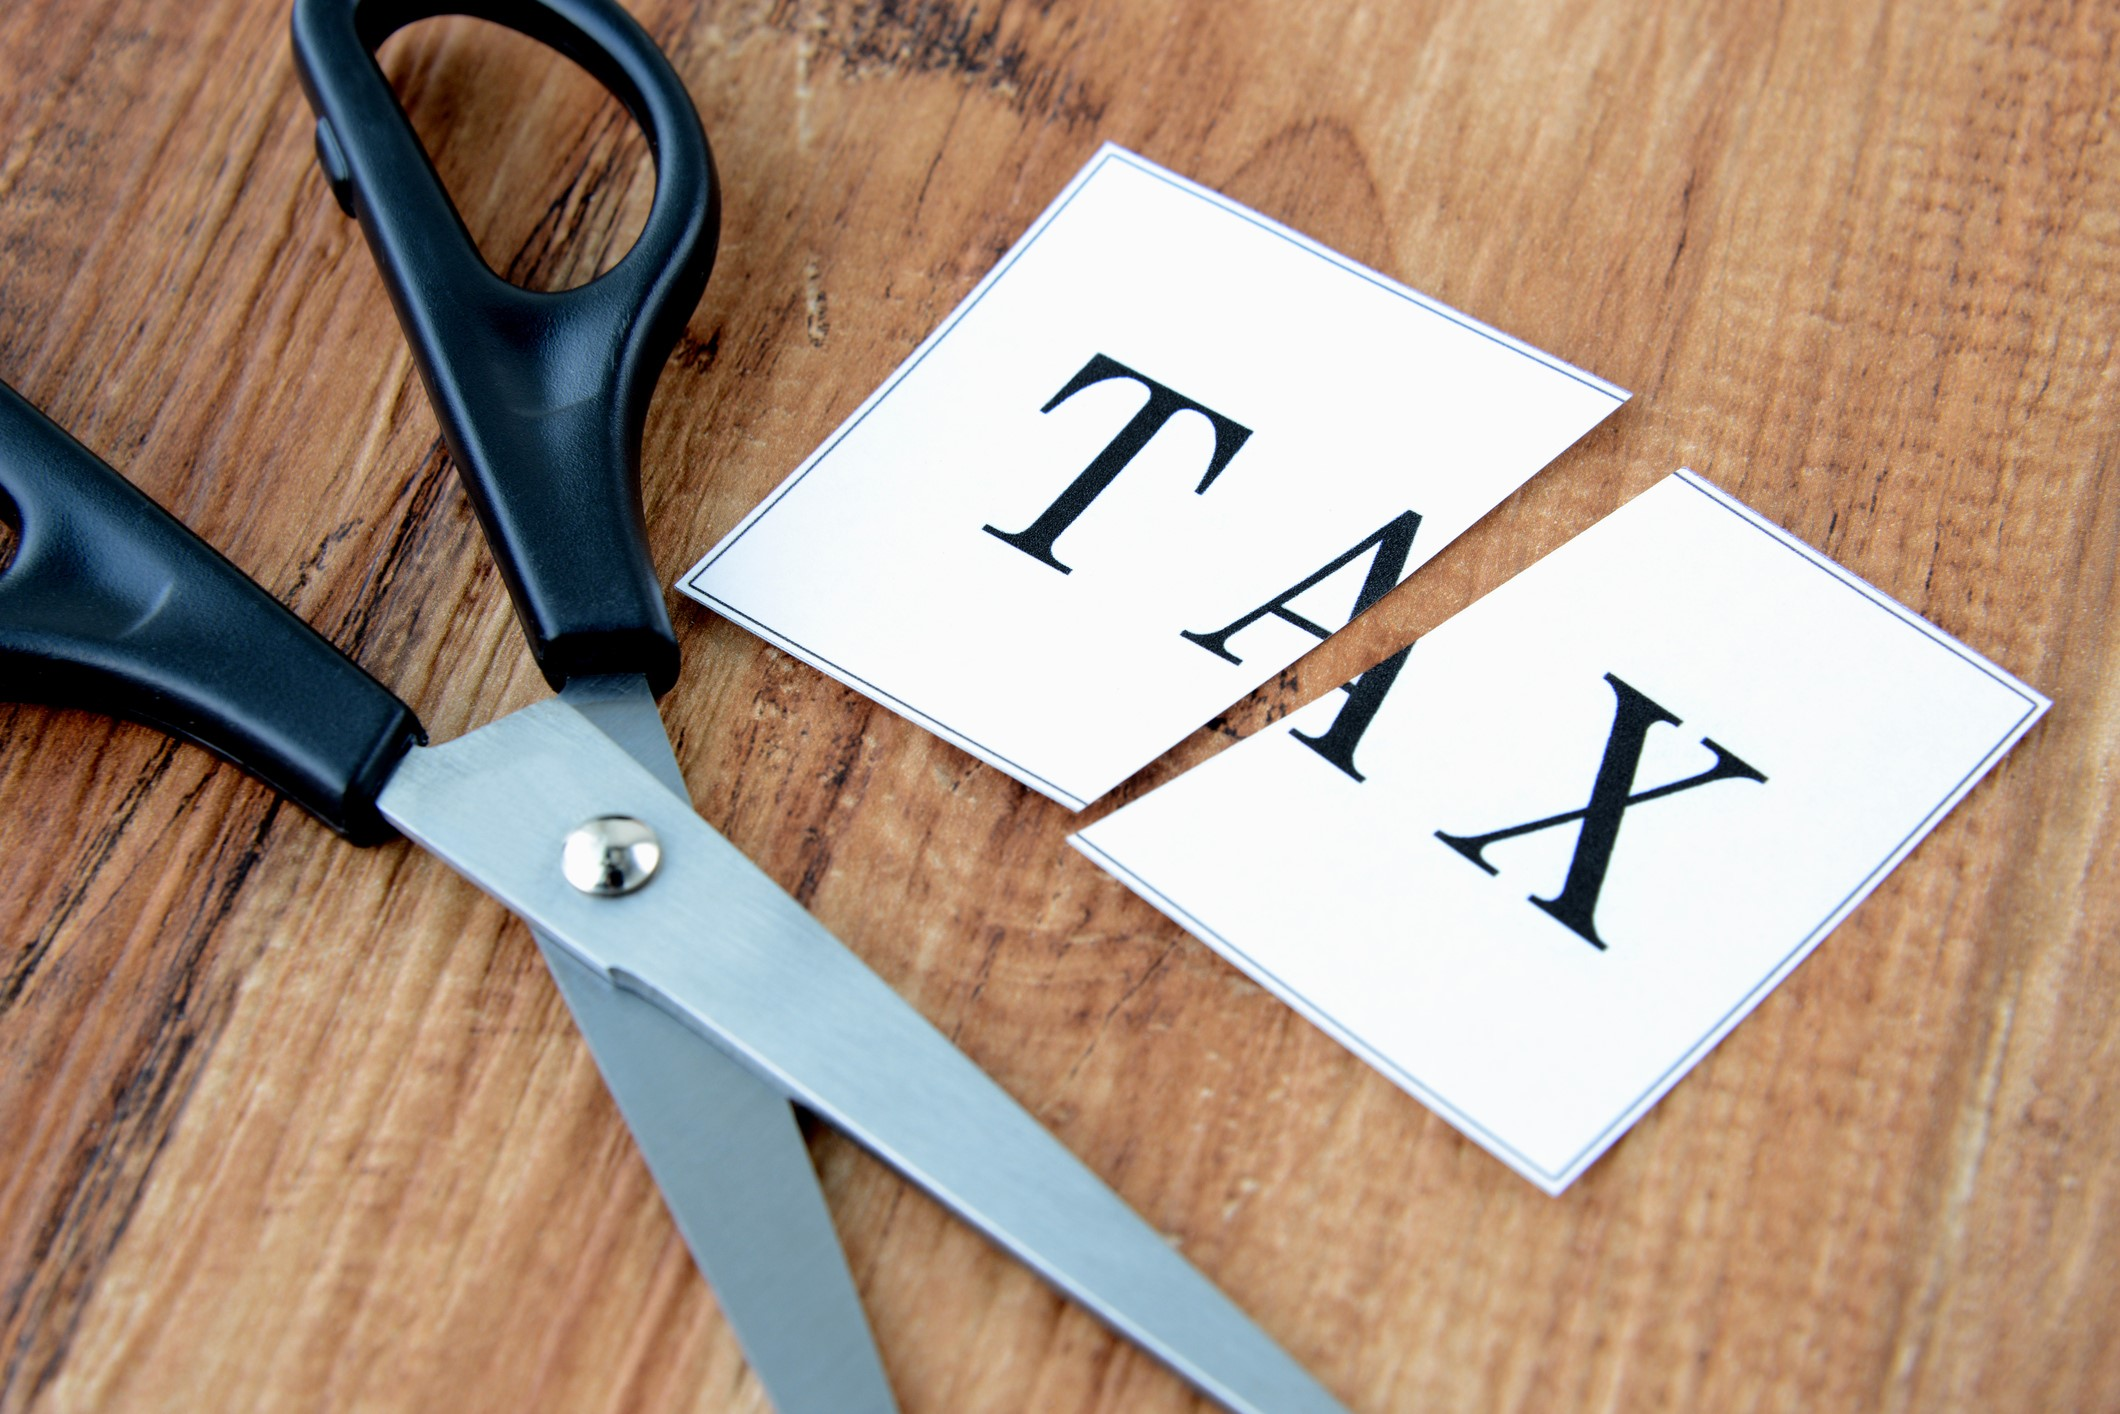 Strategies to Help Maximize Income and Minimize Taxes